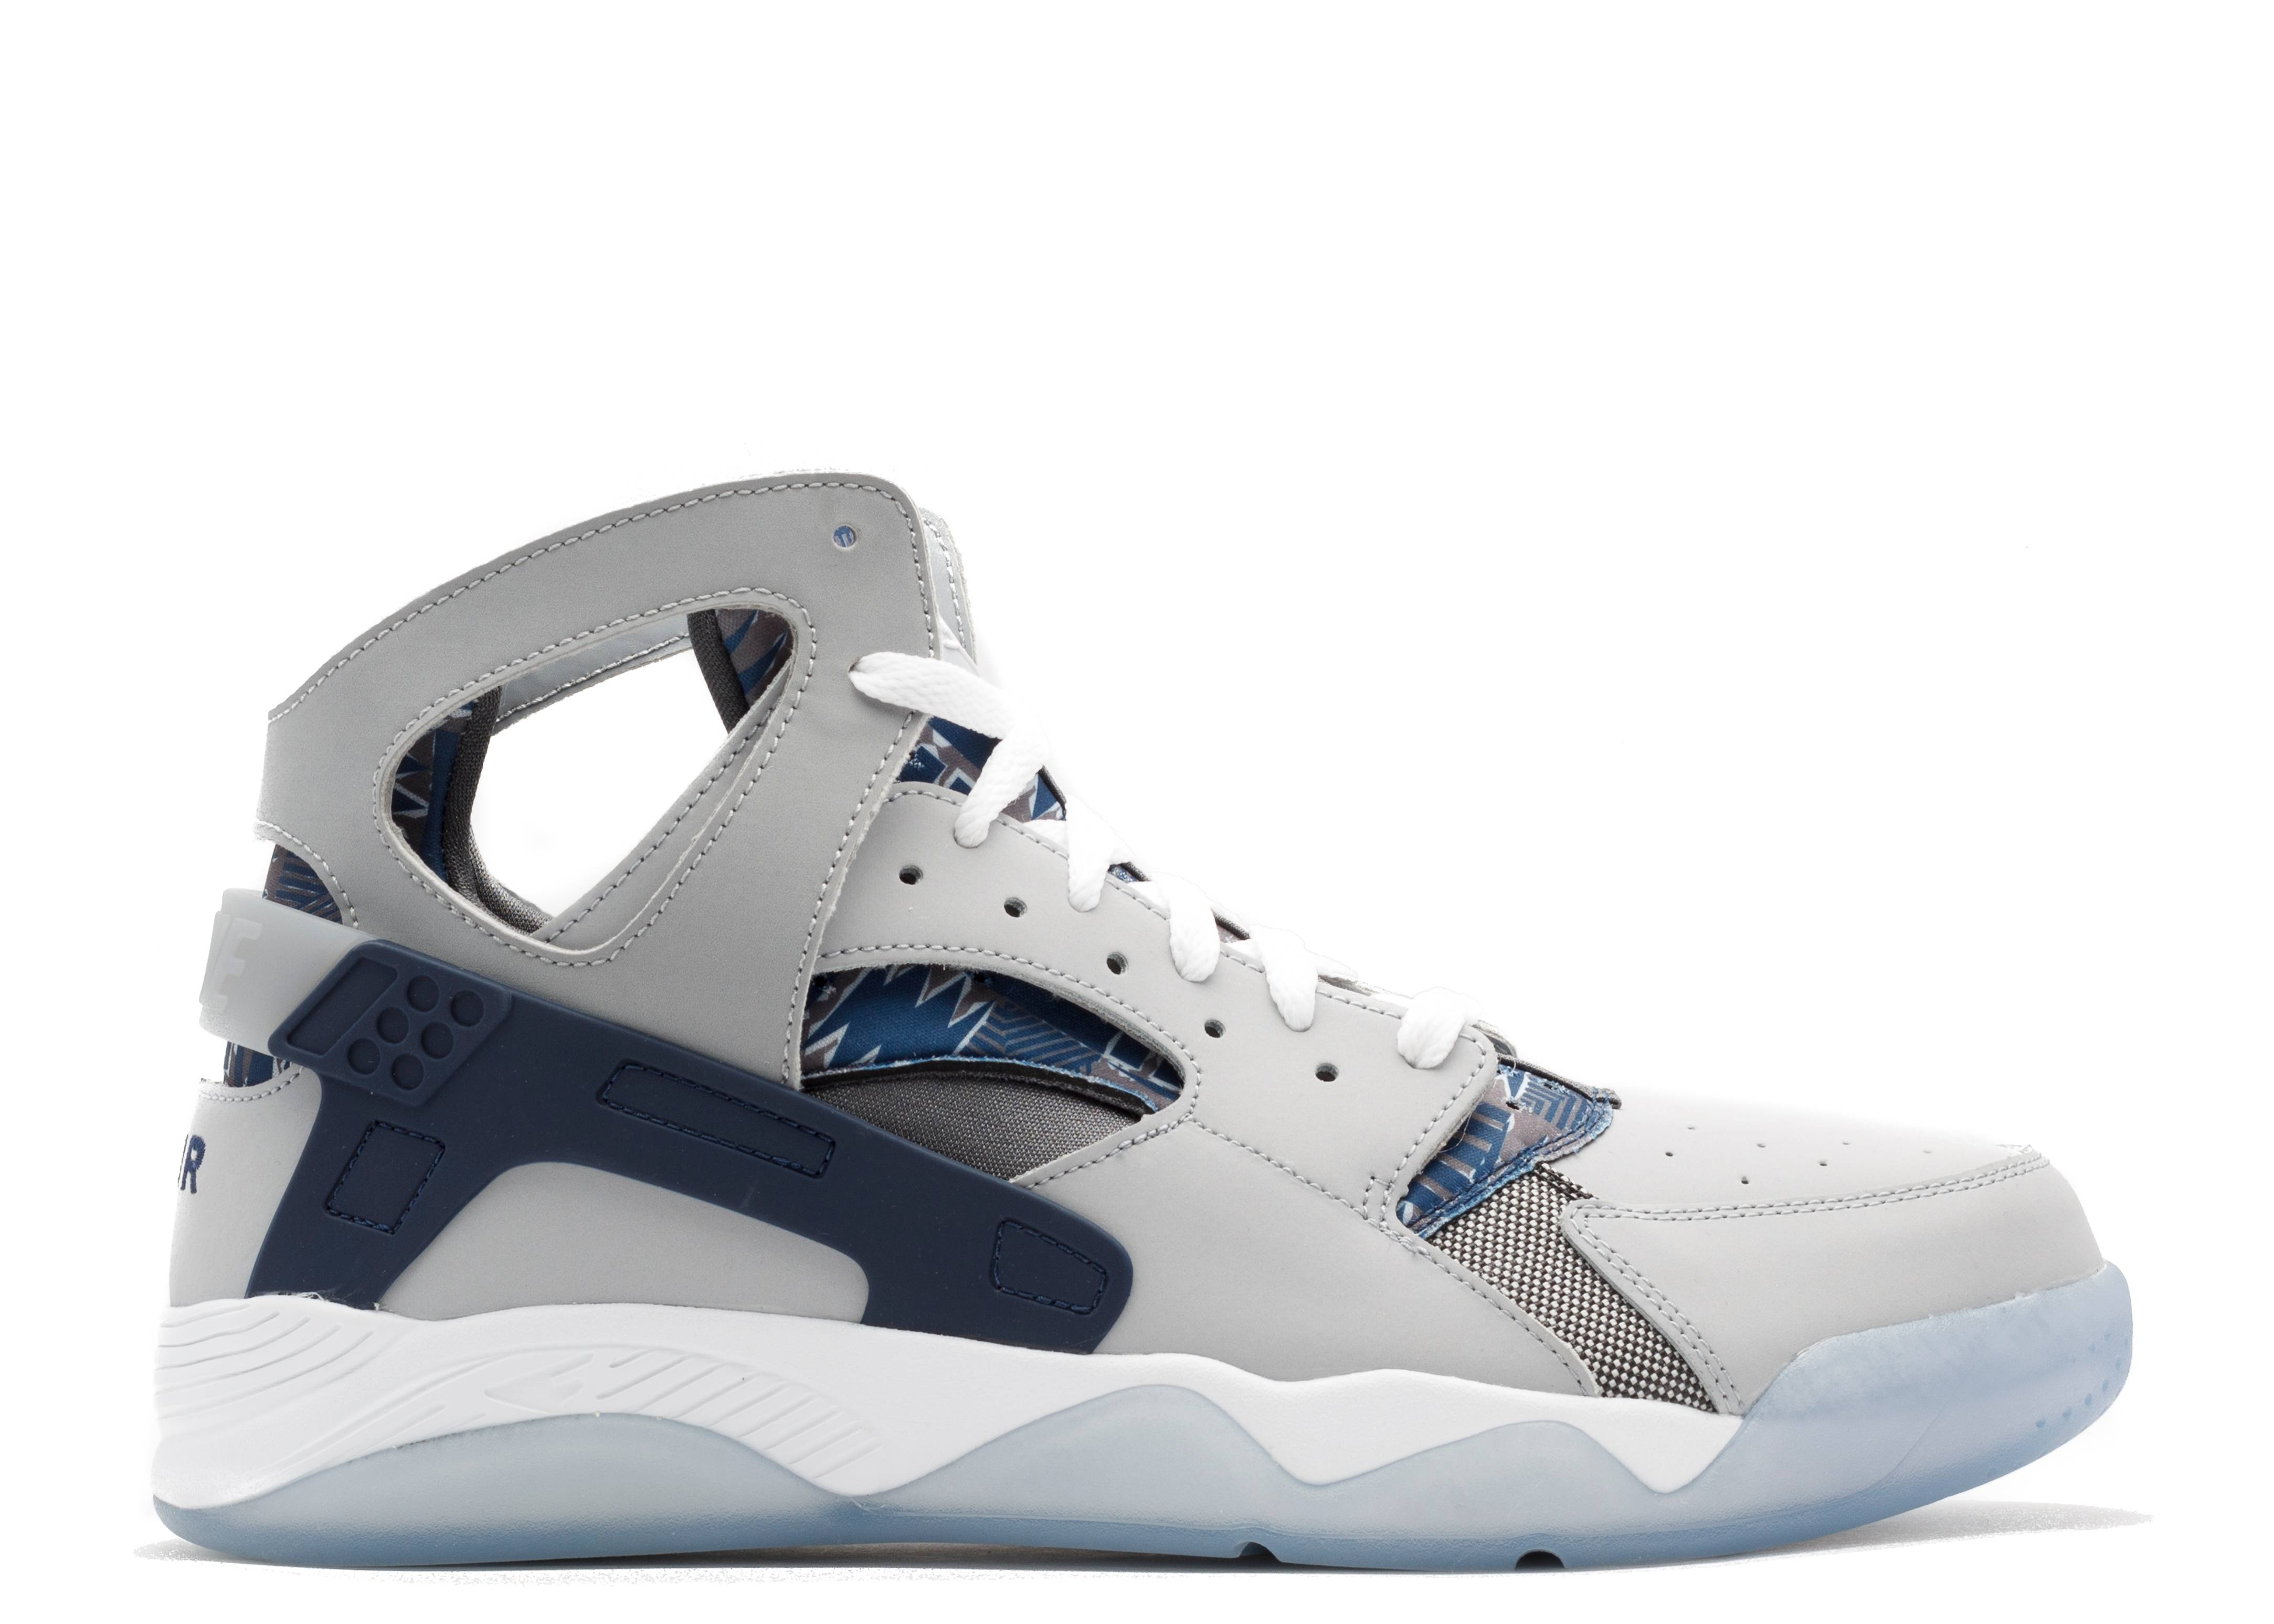 631a6d8651e8 Air Flight Huarache - Nike - 705005 001 - wolf grey mid navy-drk gry ...